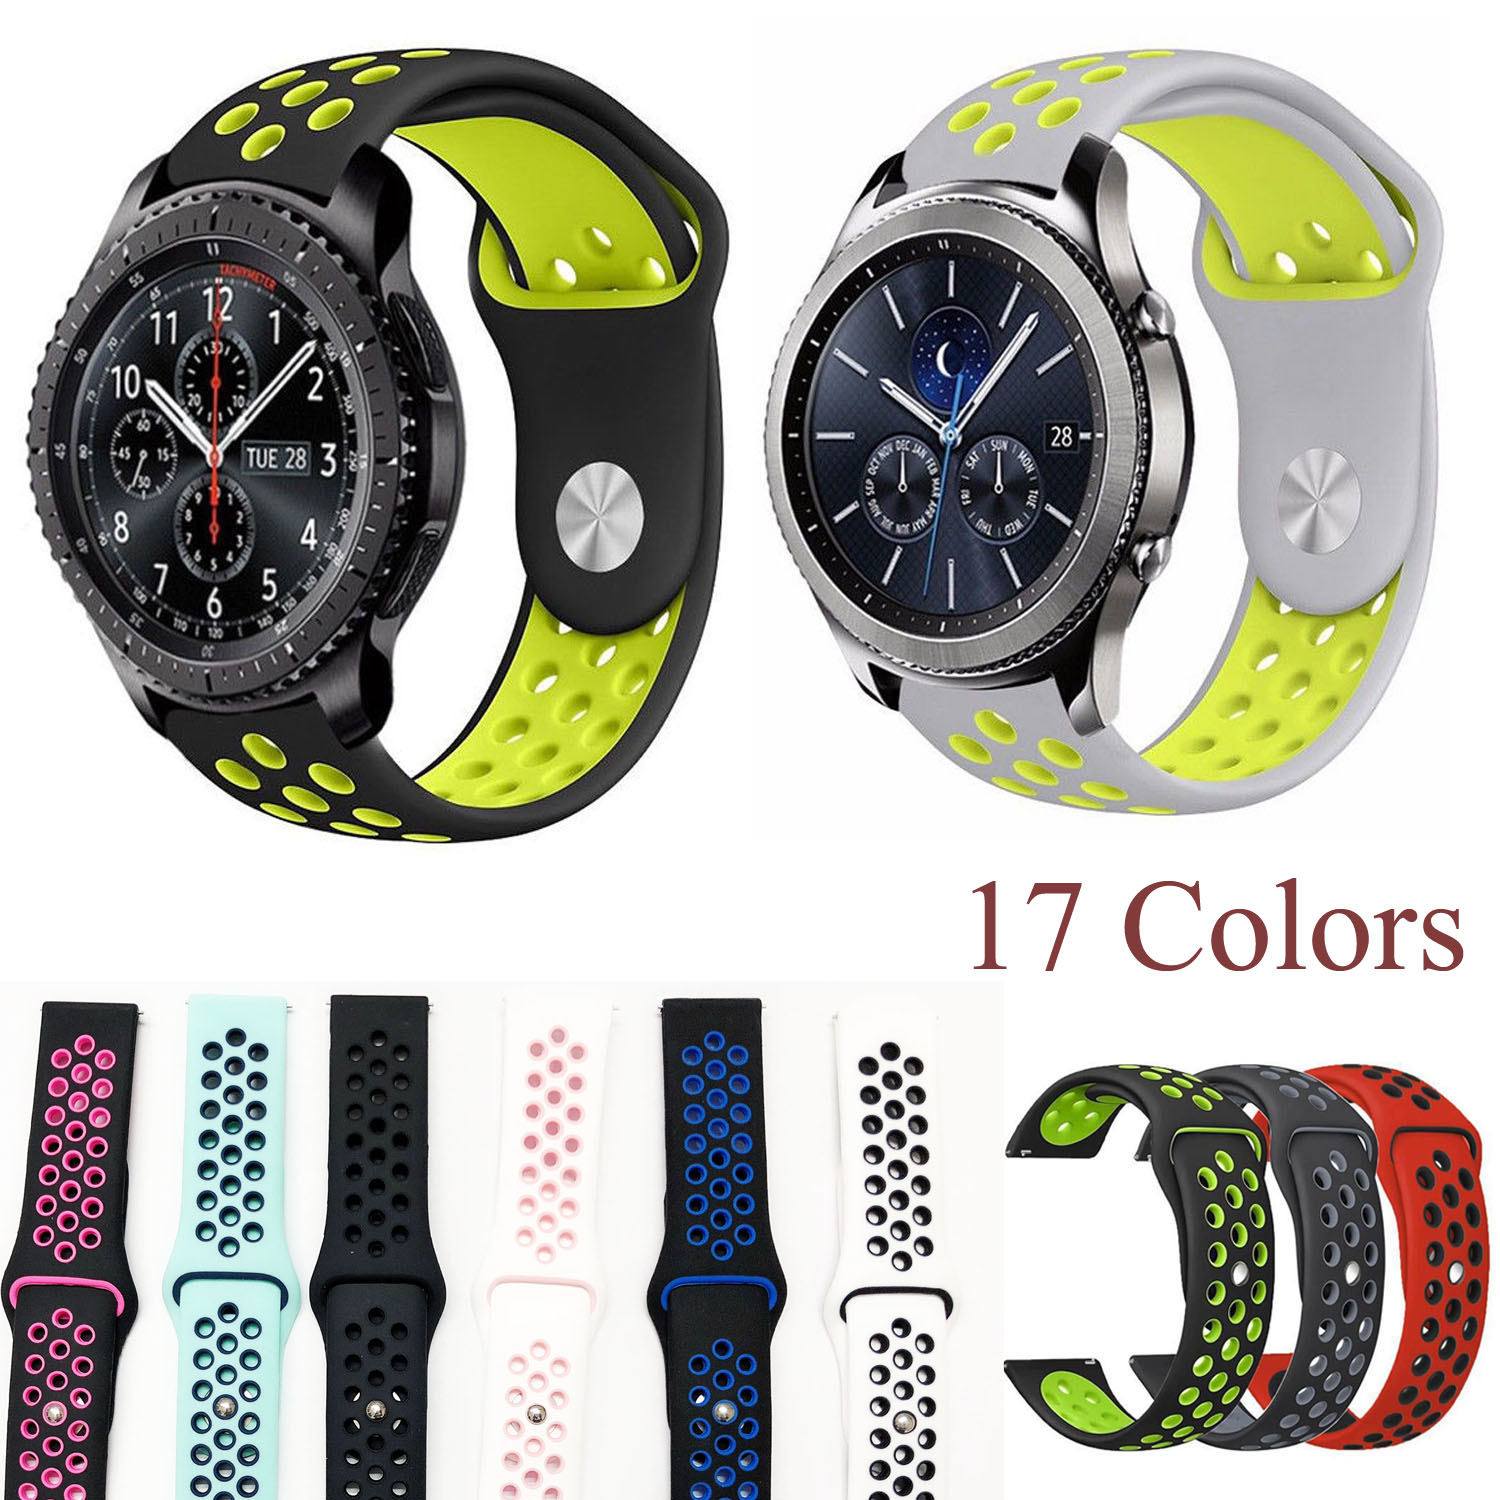 22mm Silicone Sport Band For Samsung Gear S3 Strap Breathable Bracelet For Gear S3 Classic S3 Frontier Watchbands